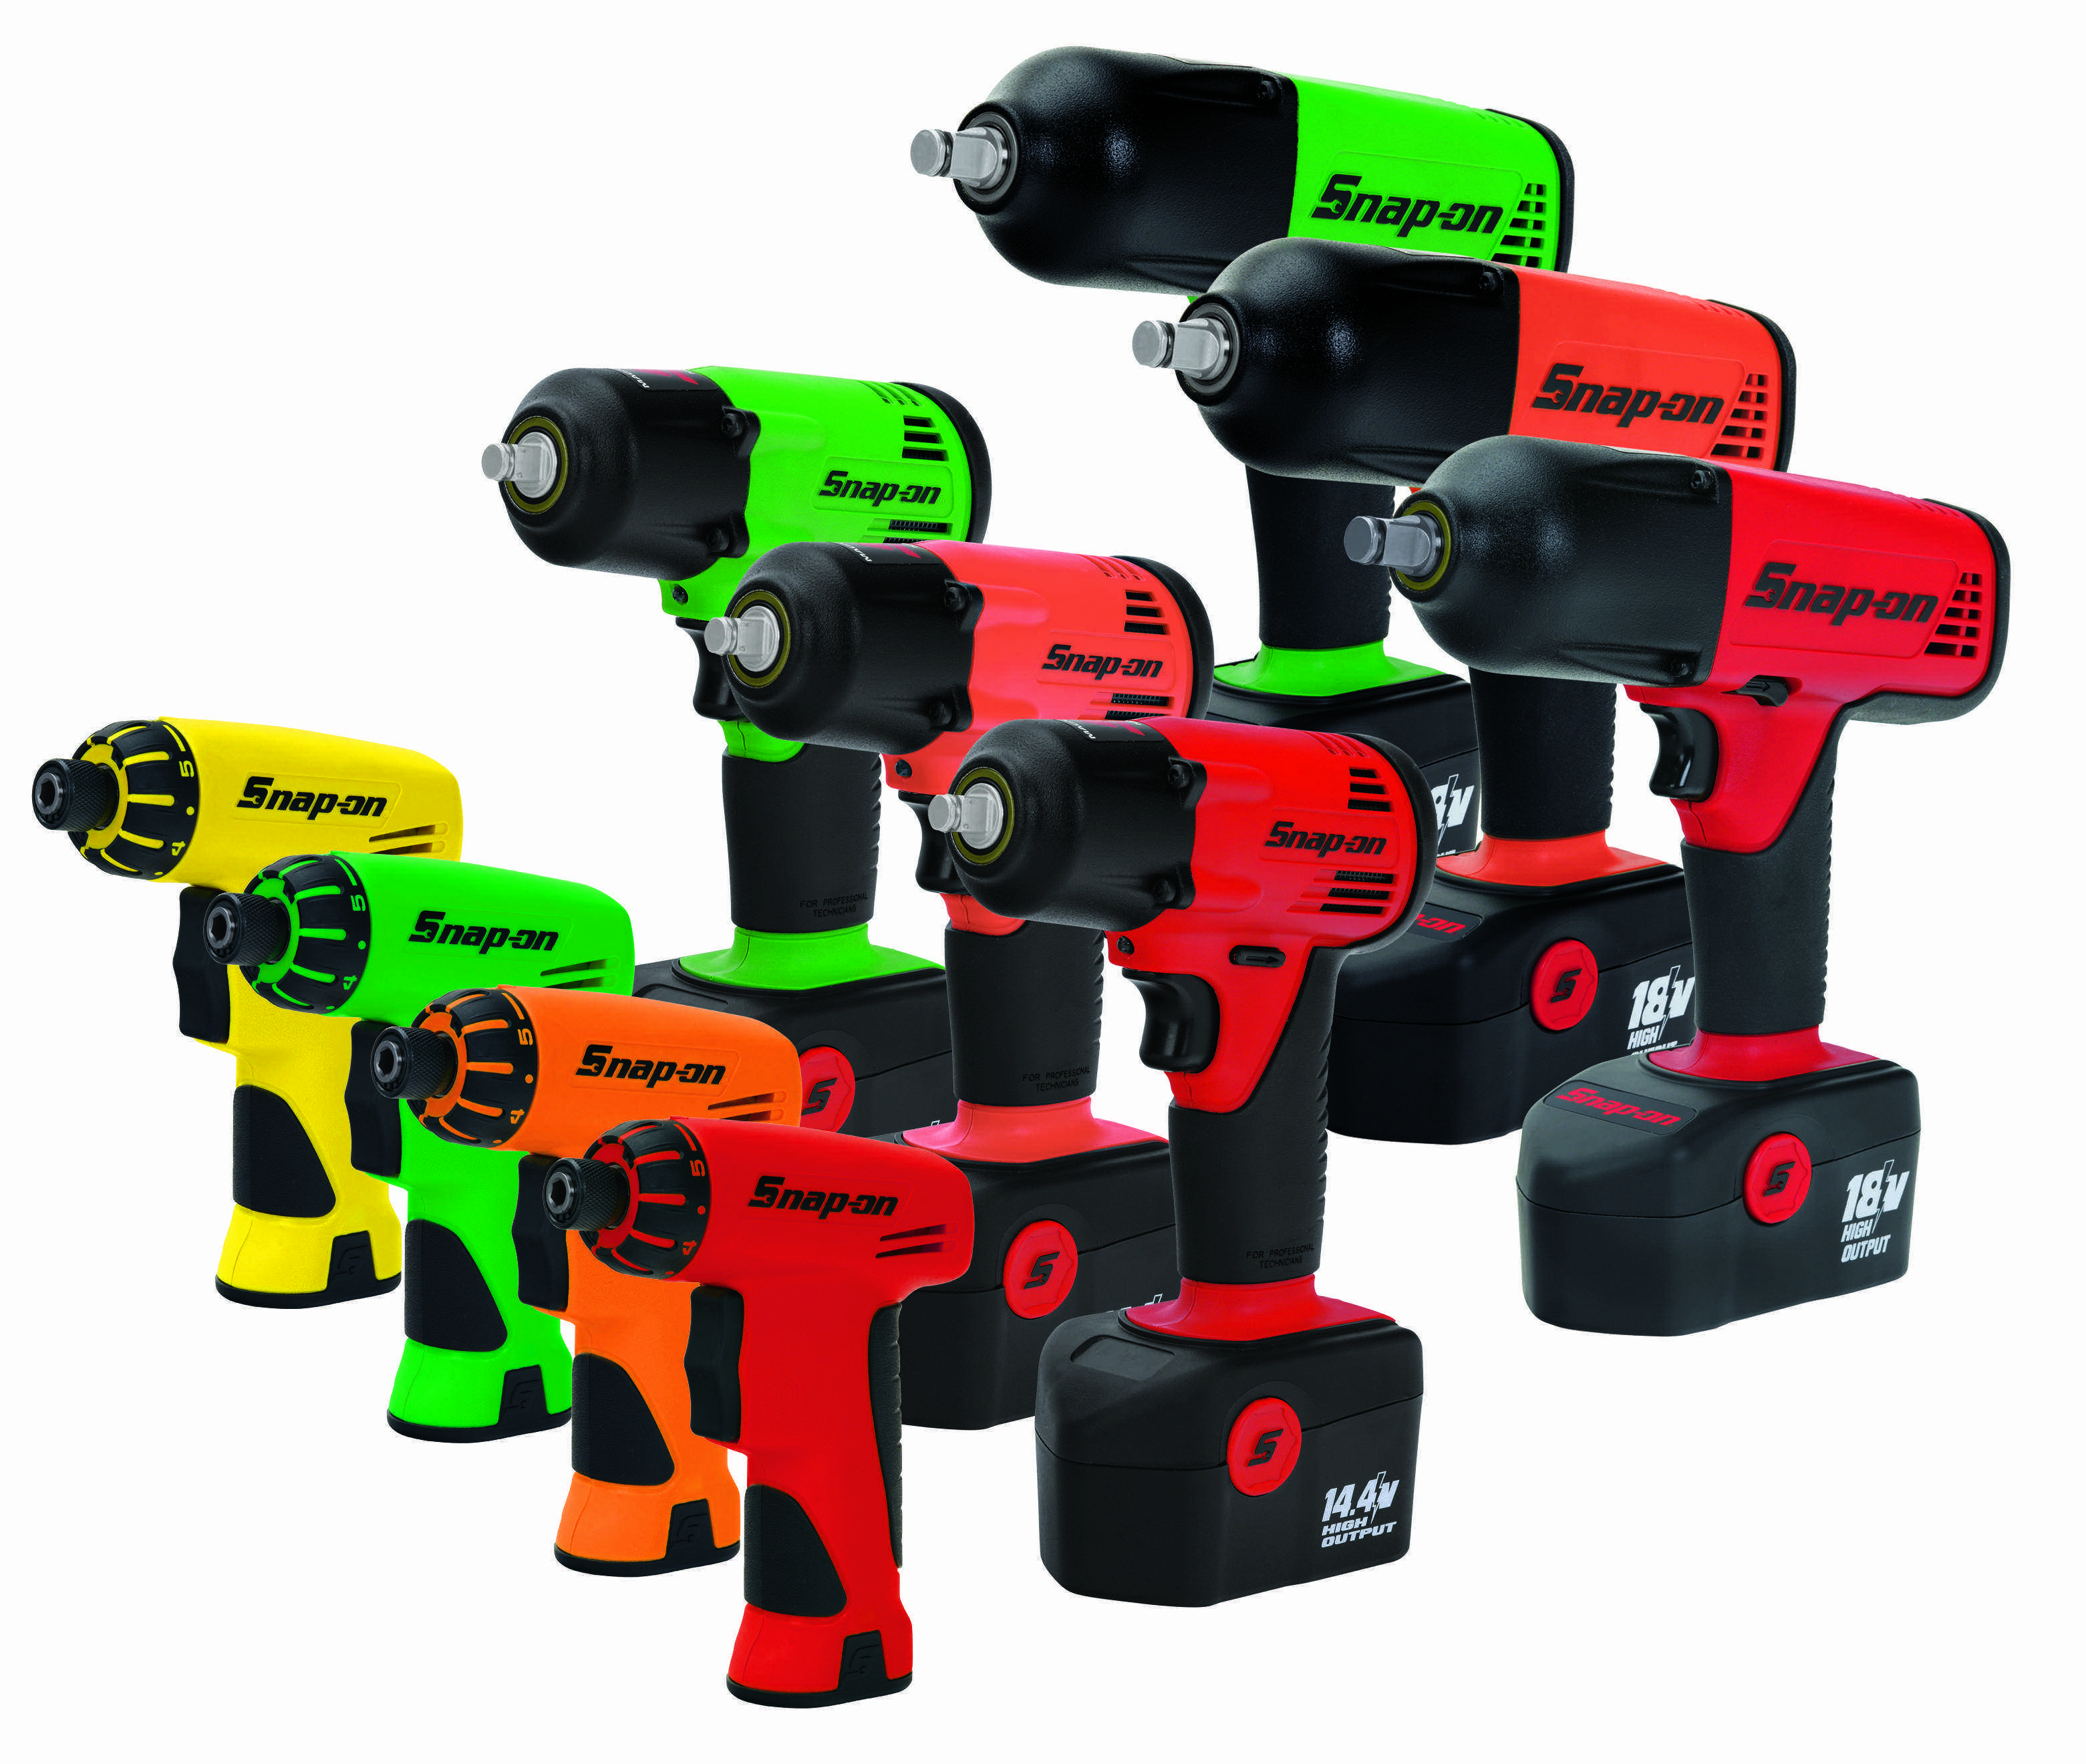 Snap-on adds color to select tools